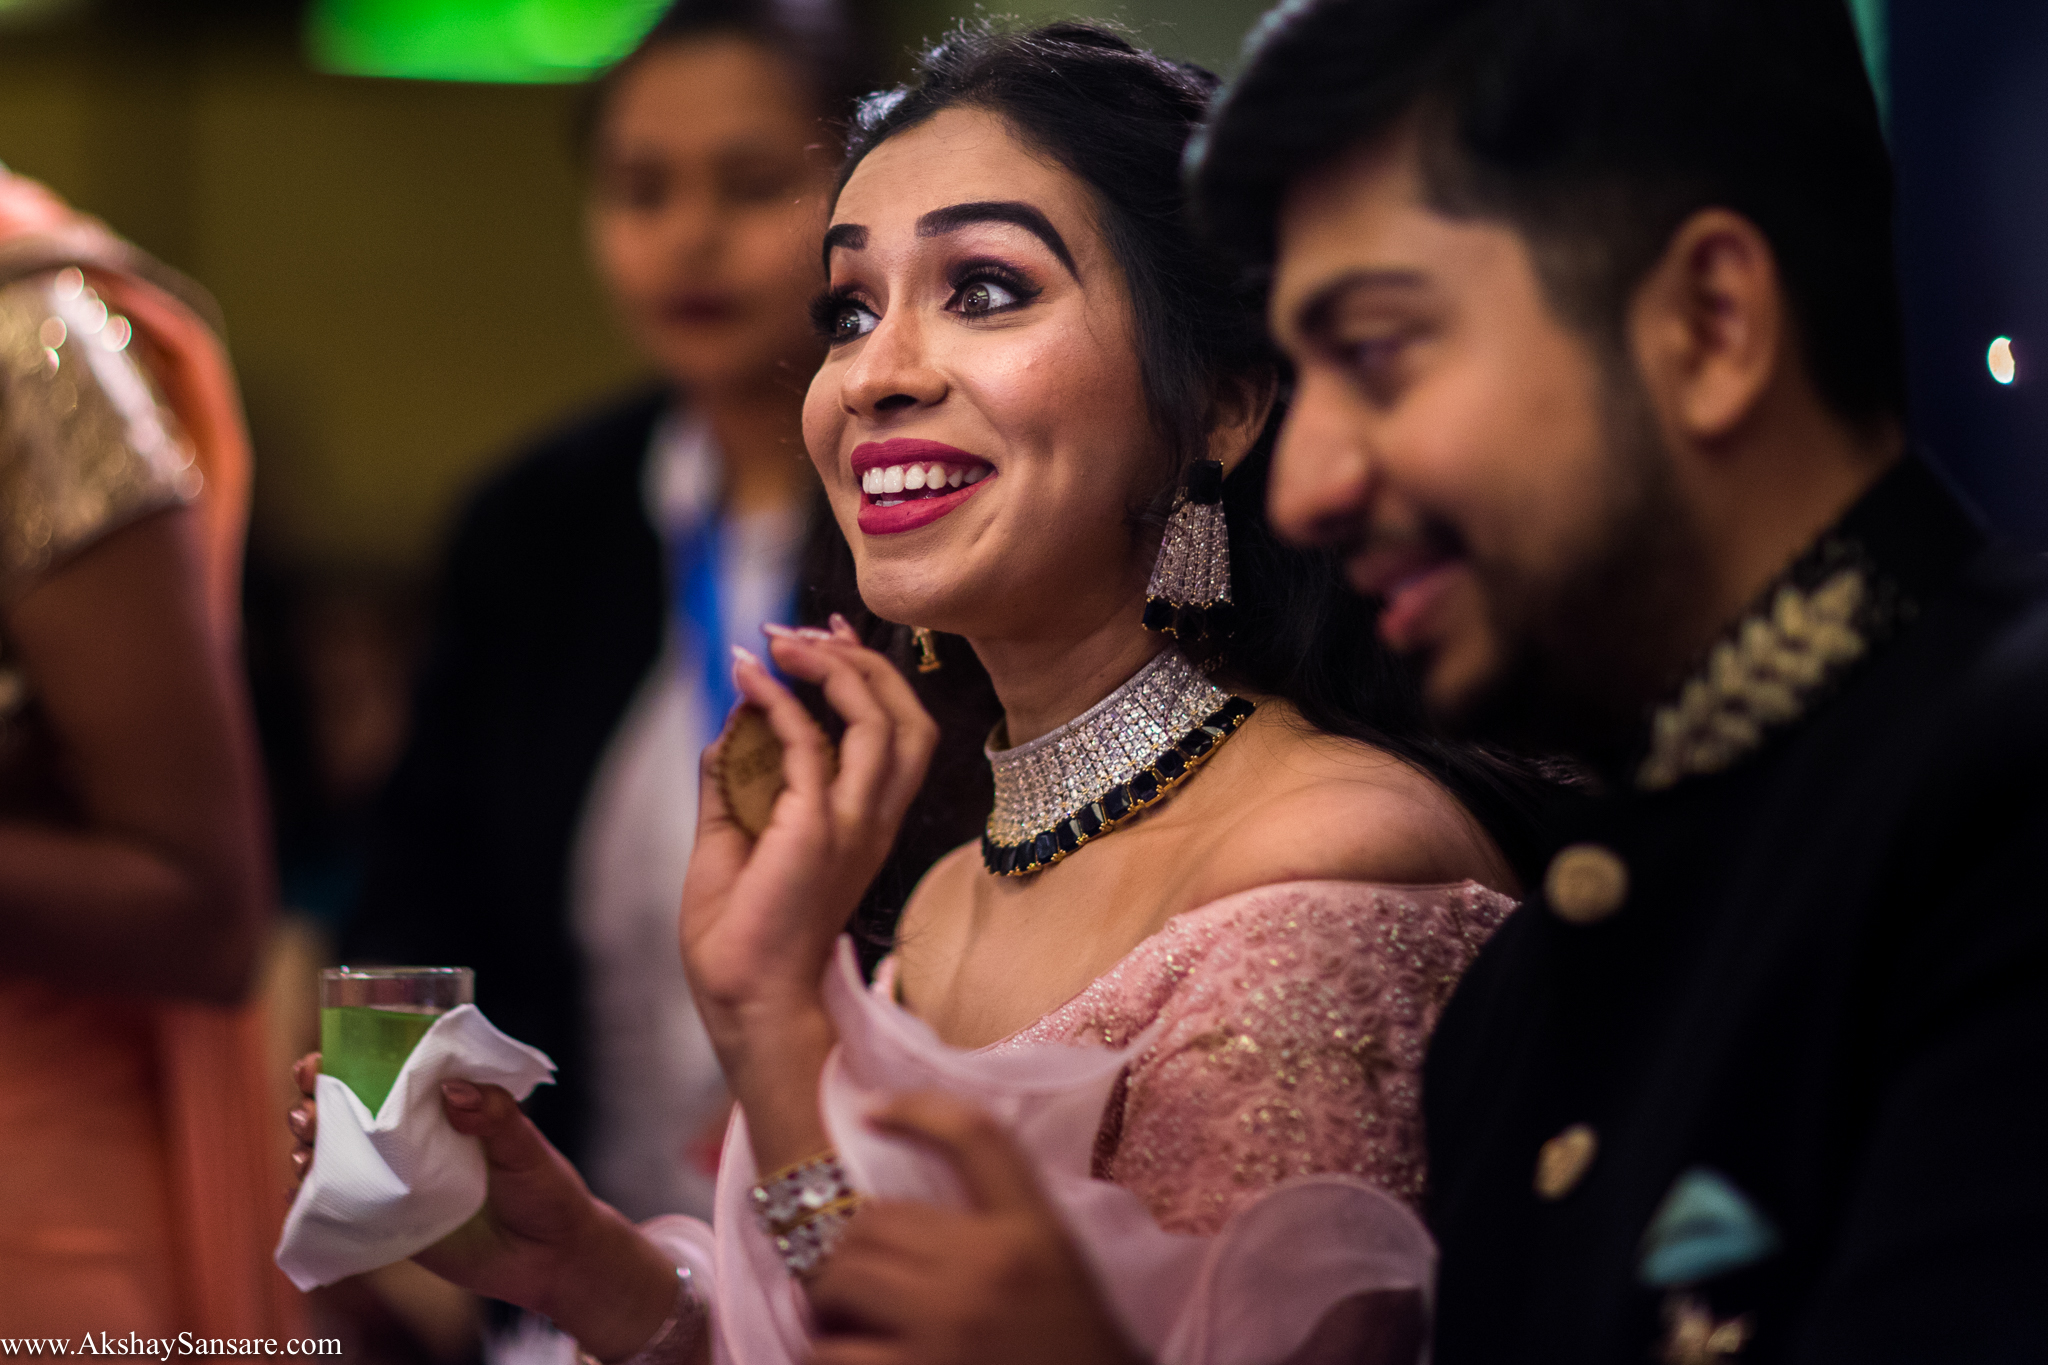 Nupur & Rohan wedding Akshay Sansare Photography best wedding photographer in mumbai India Candid(5).jpg